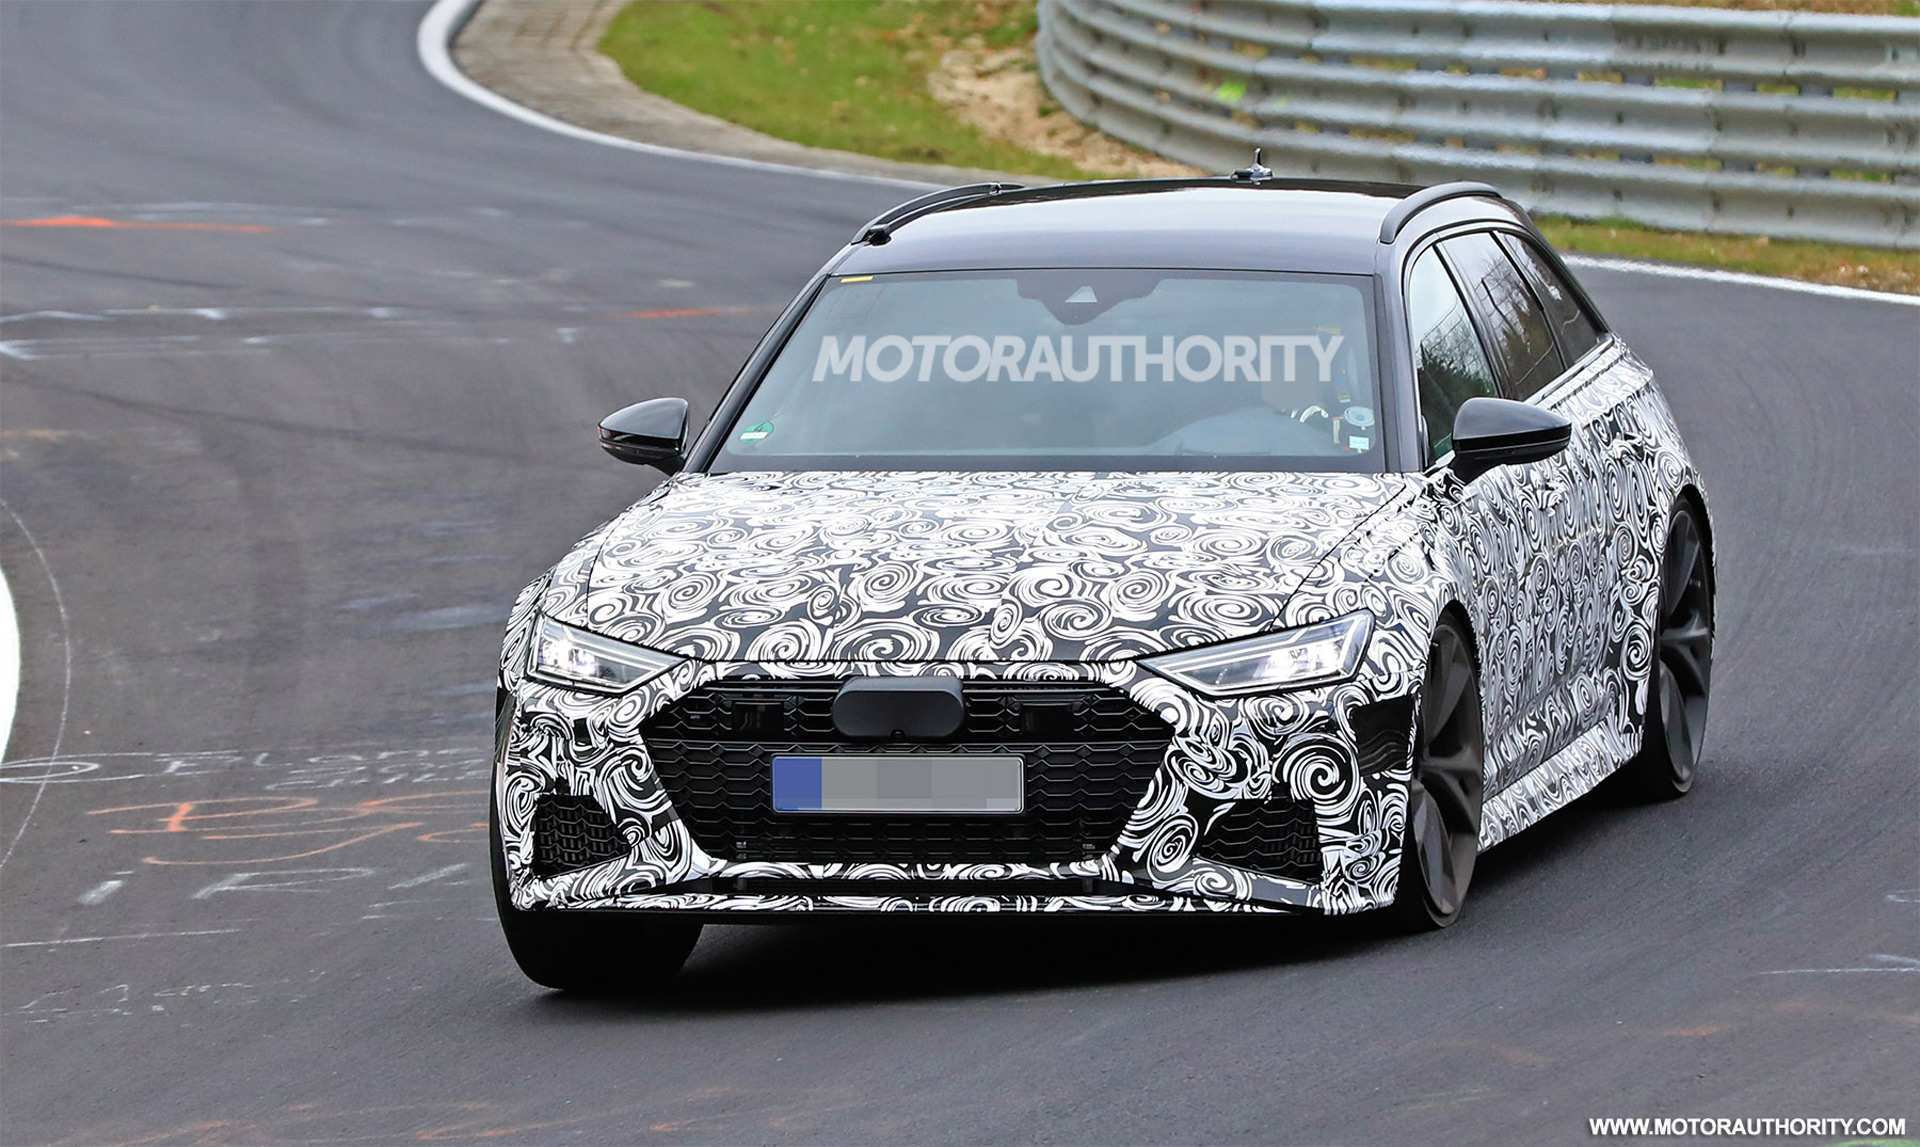 84 New Audi Rs6 Avant 2020 Price And Release Date